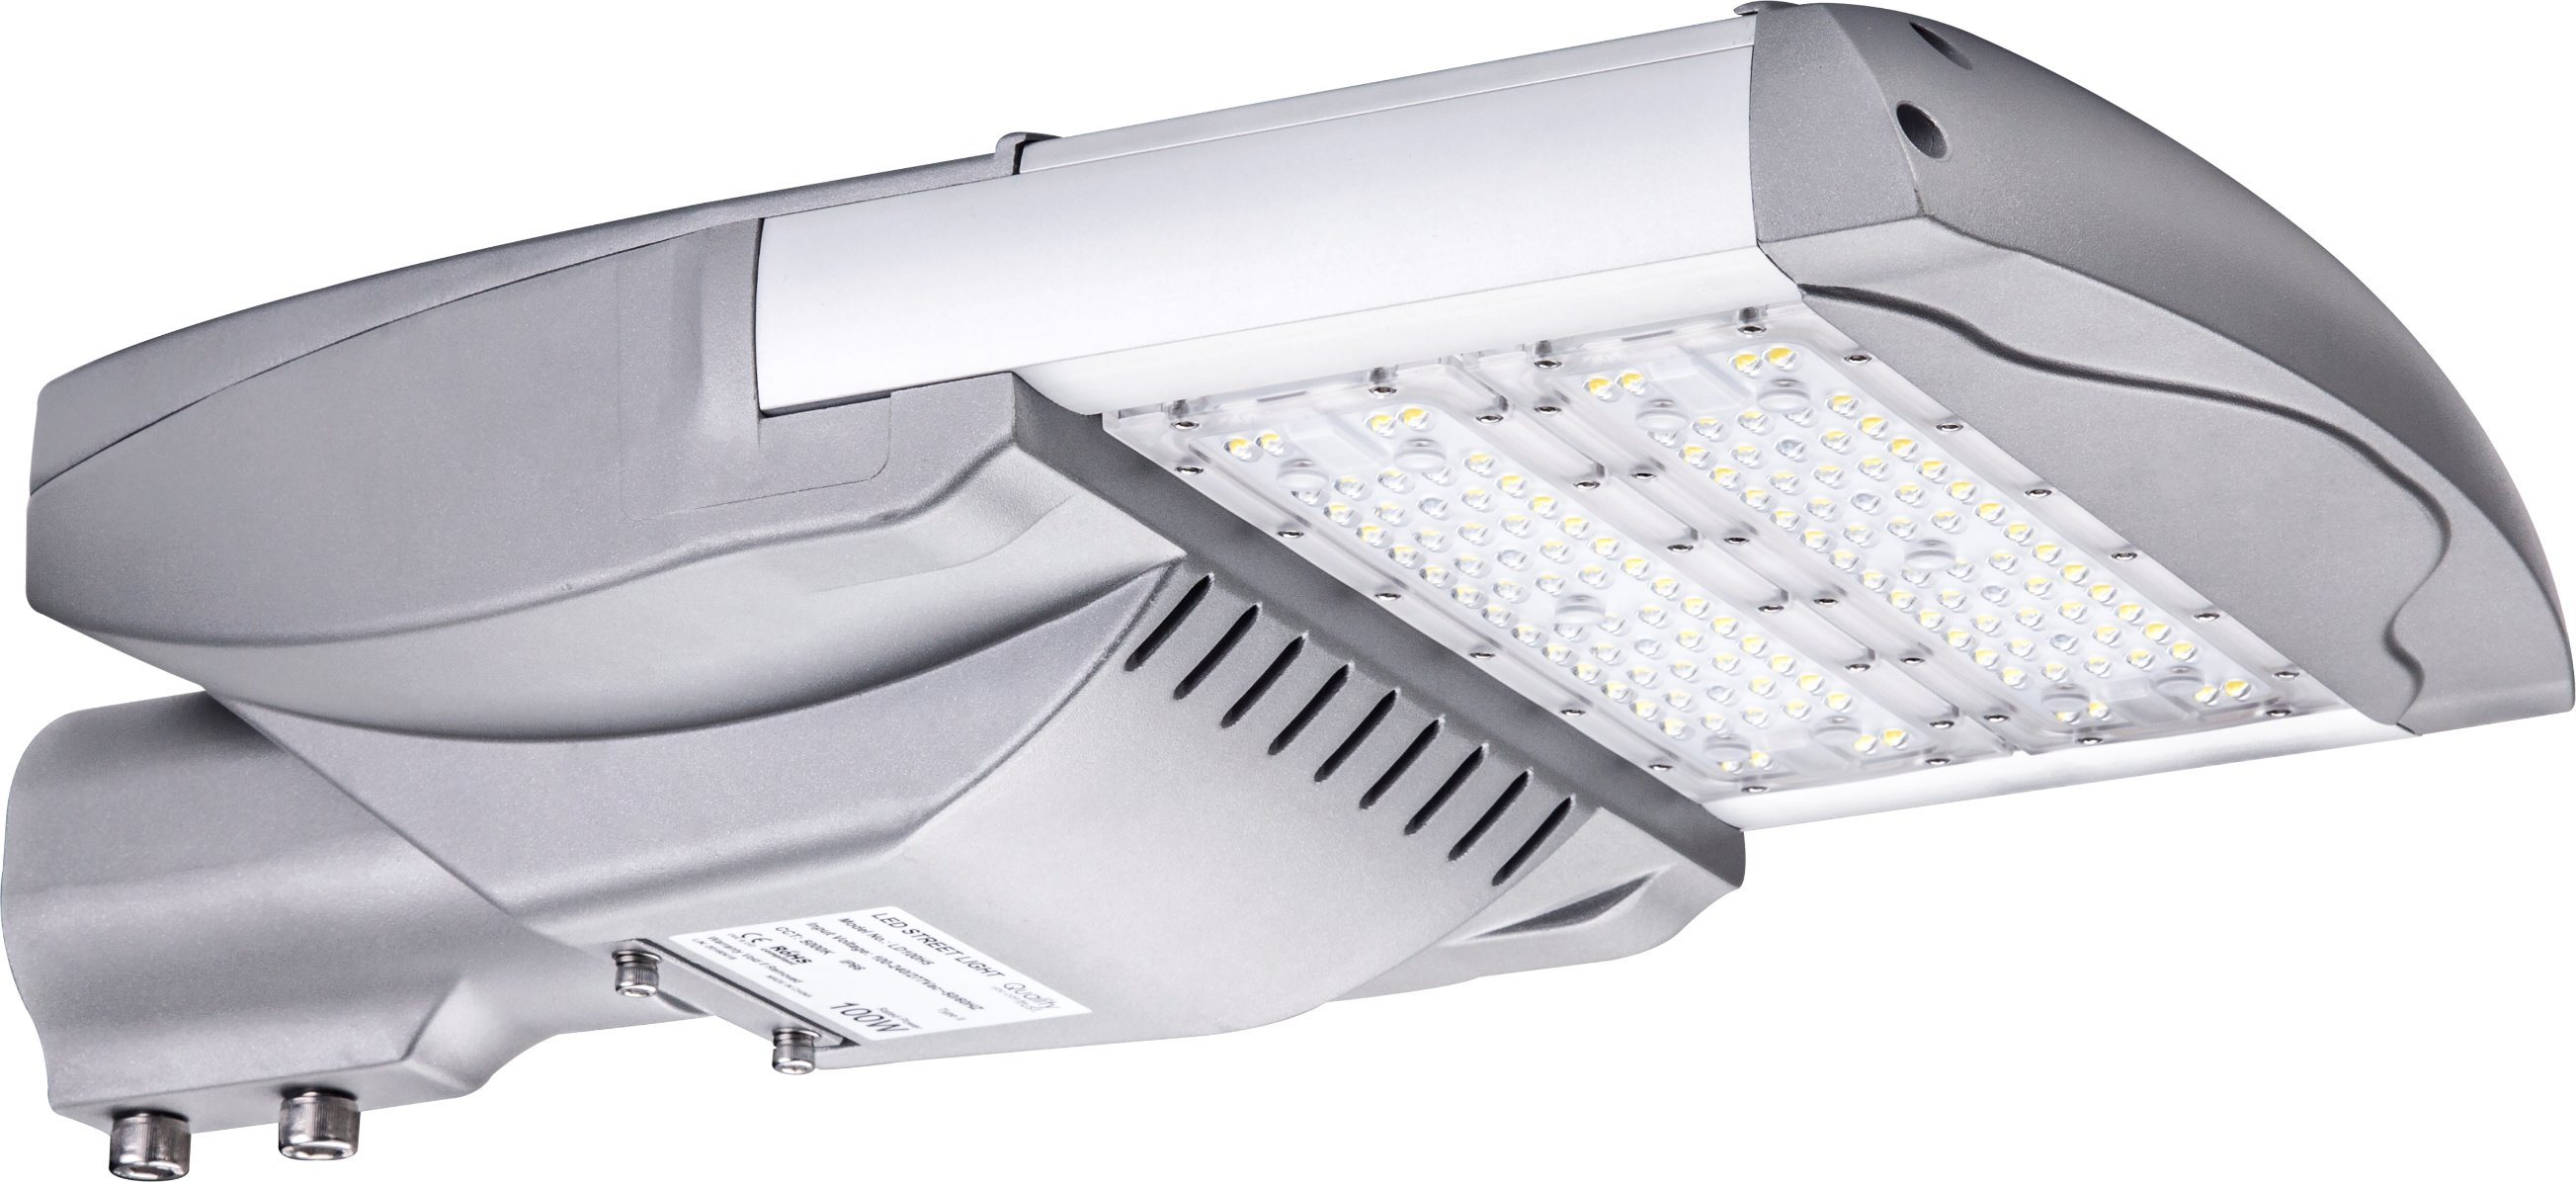 INVENTRONICS DIMMABLE DRIVER FOR WINDOWS MAC